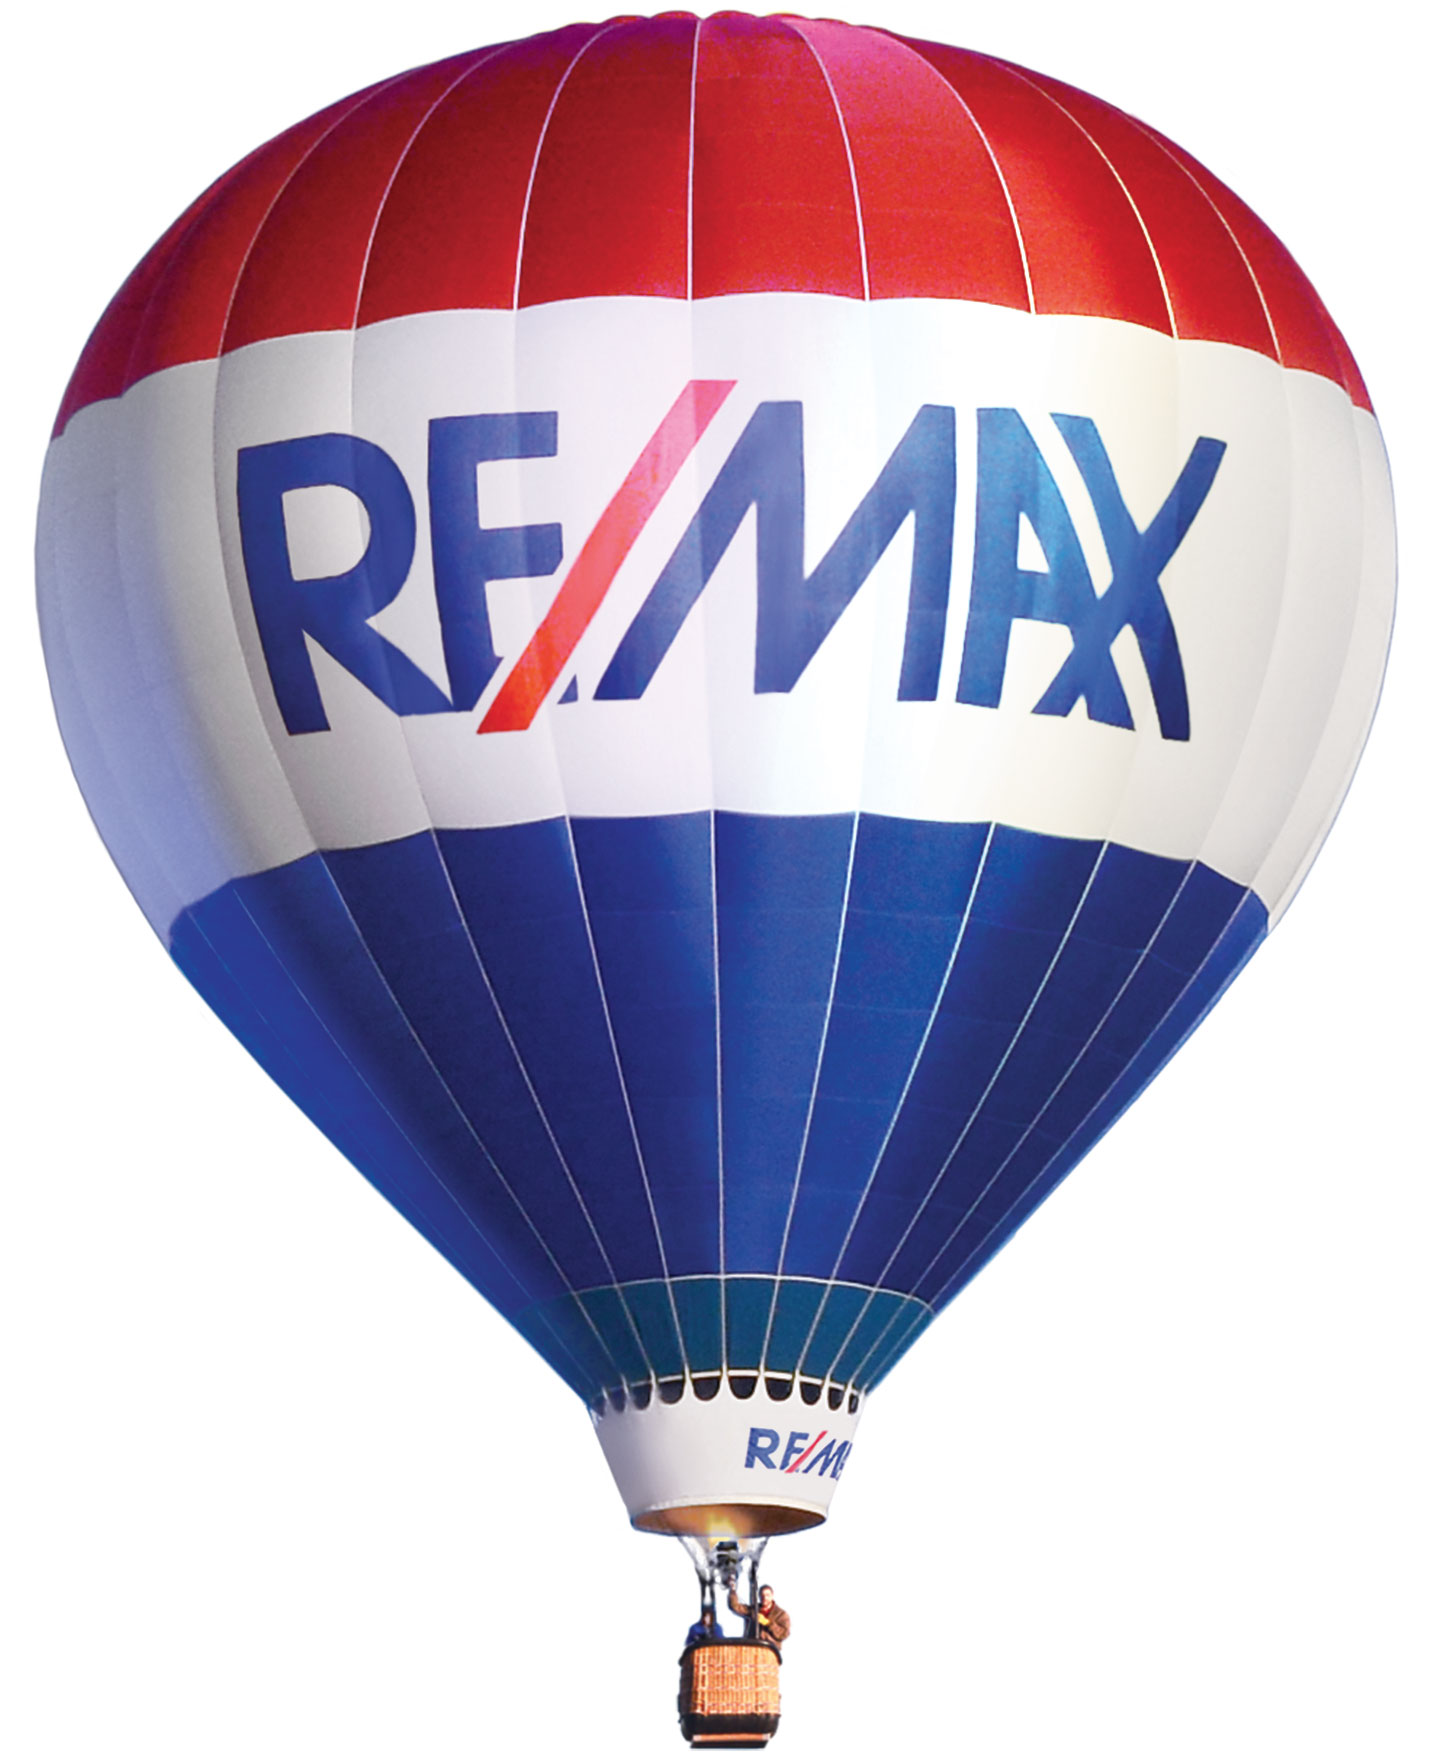 RE/MAX Patriot logo